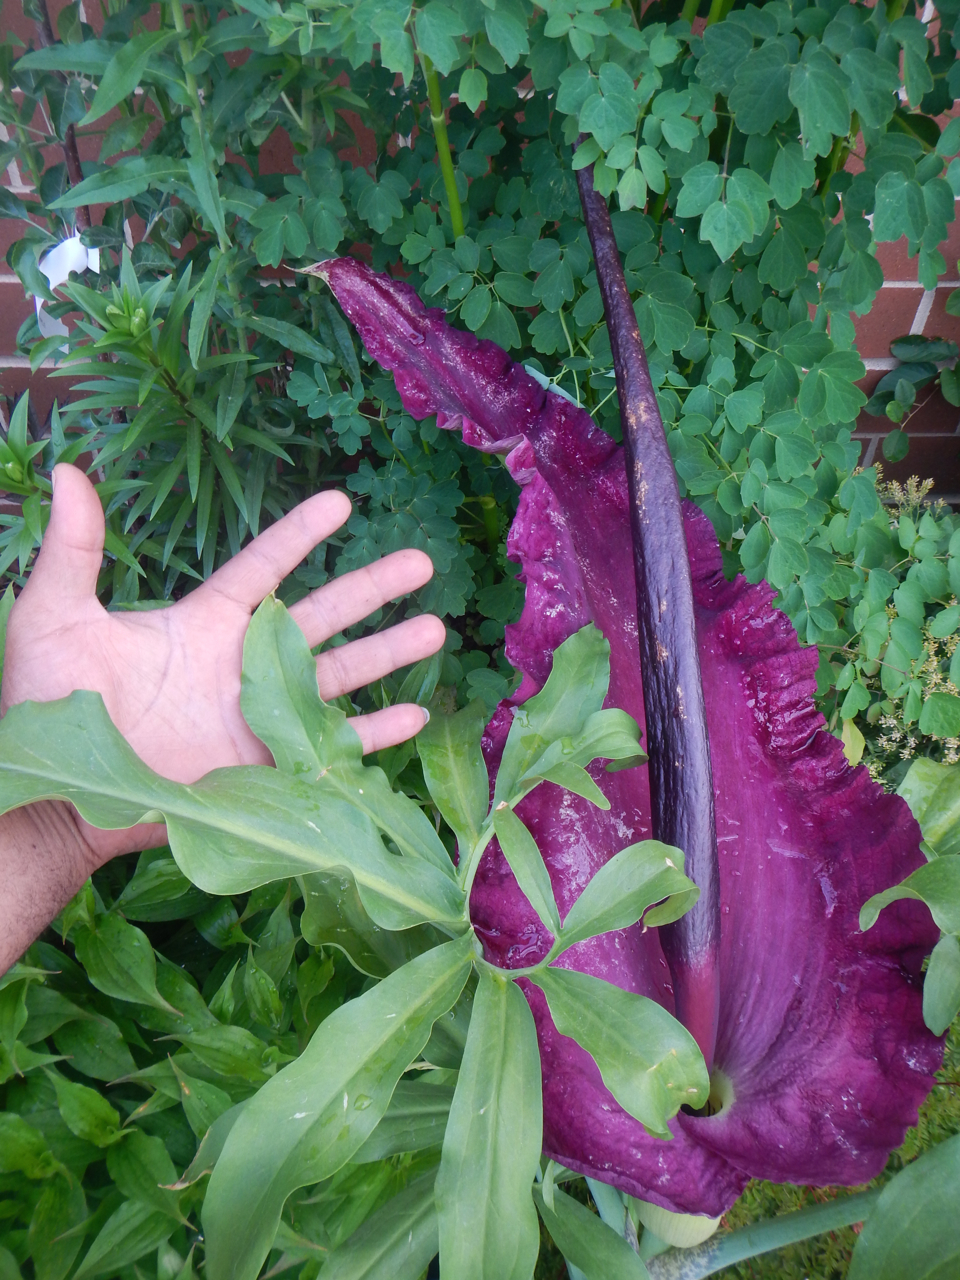 Aroid Award 2018 Mossies - Dragon Arum (Dracunculus vulgaris)